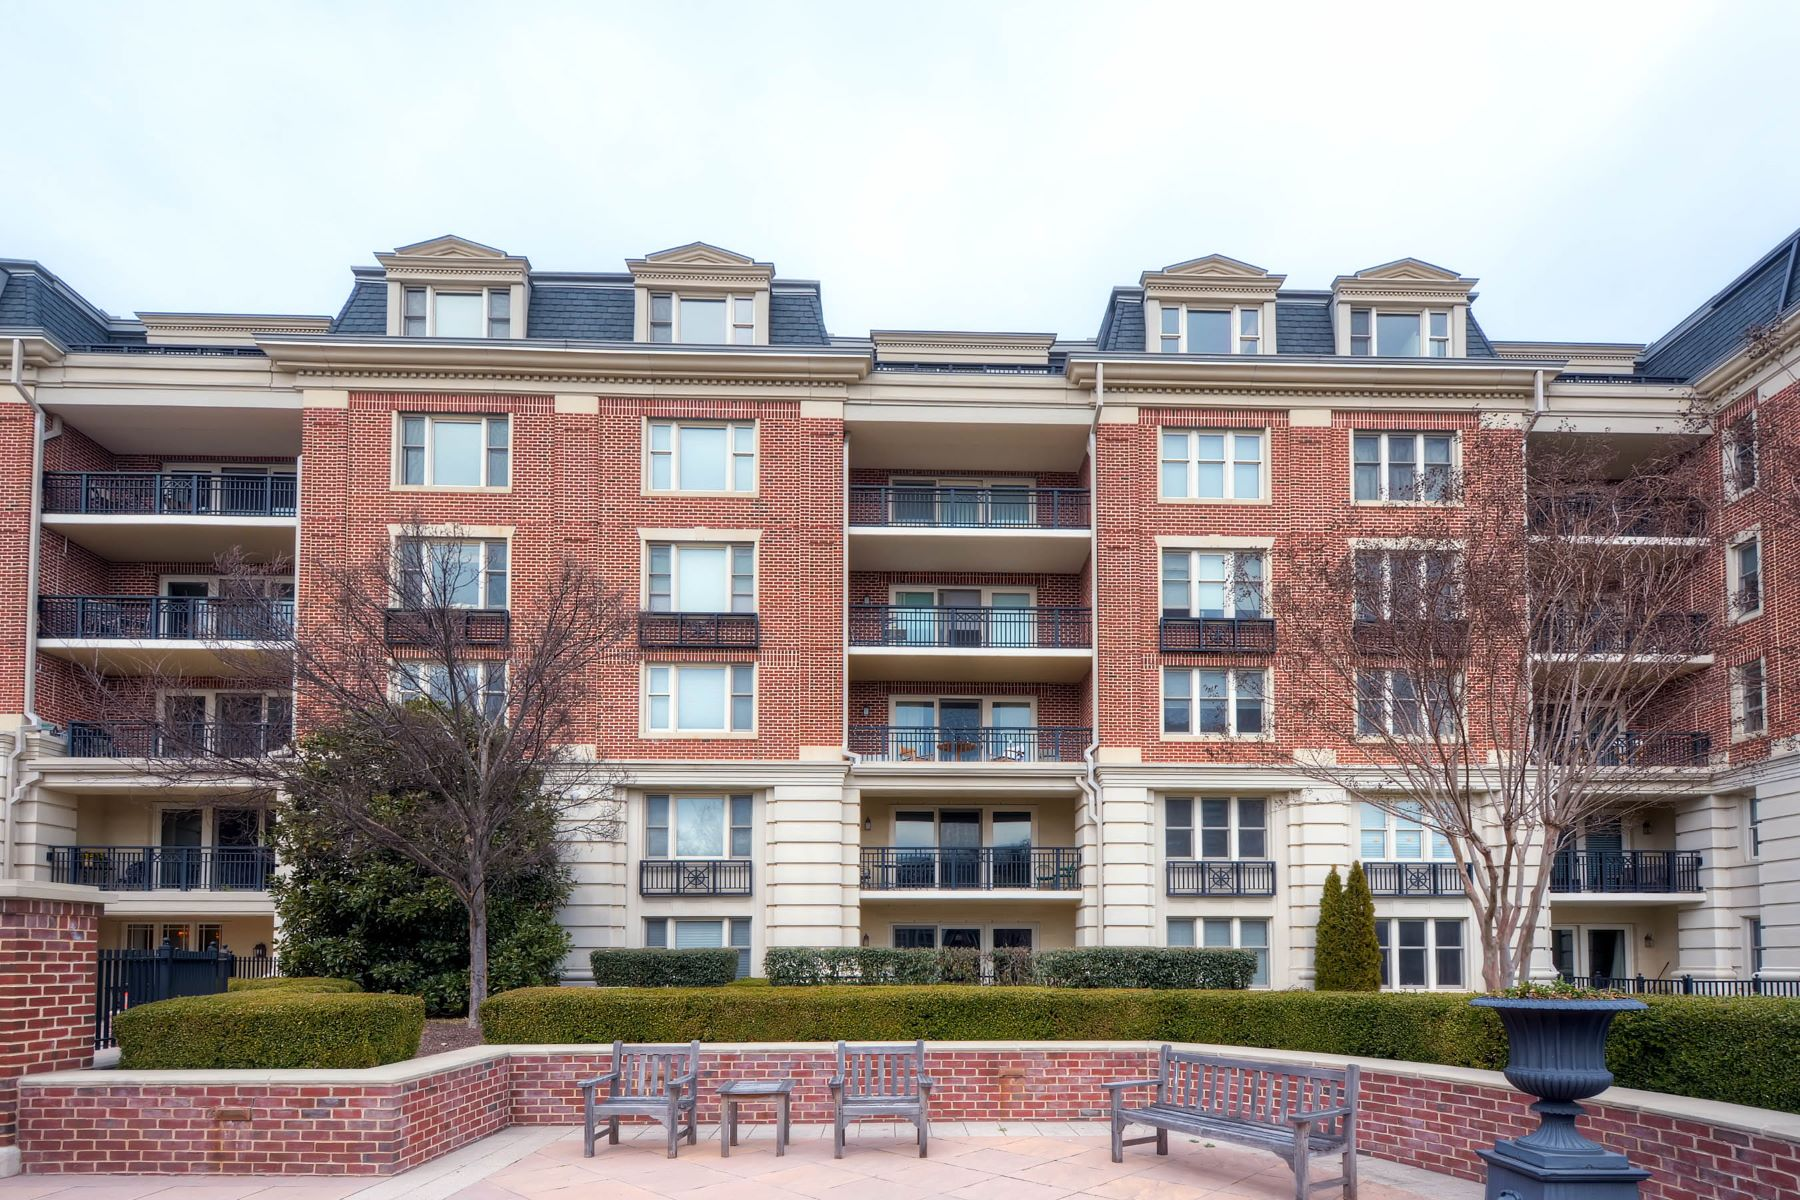 Condominium for Rent at The Ritz-Carlton Residences 801 Key Highway #457 Baltimore, Maryland 21230 United States